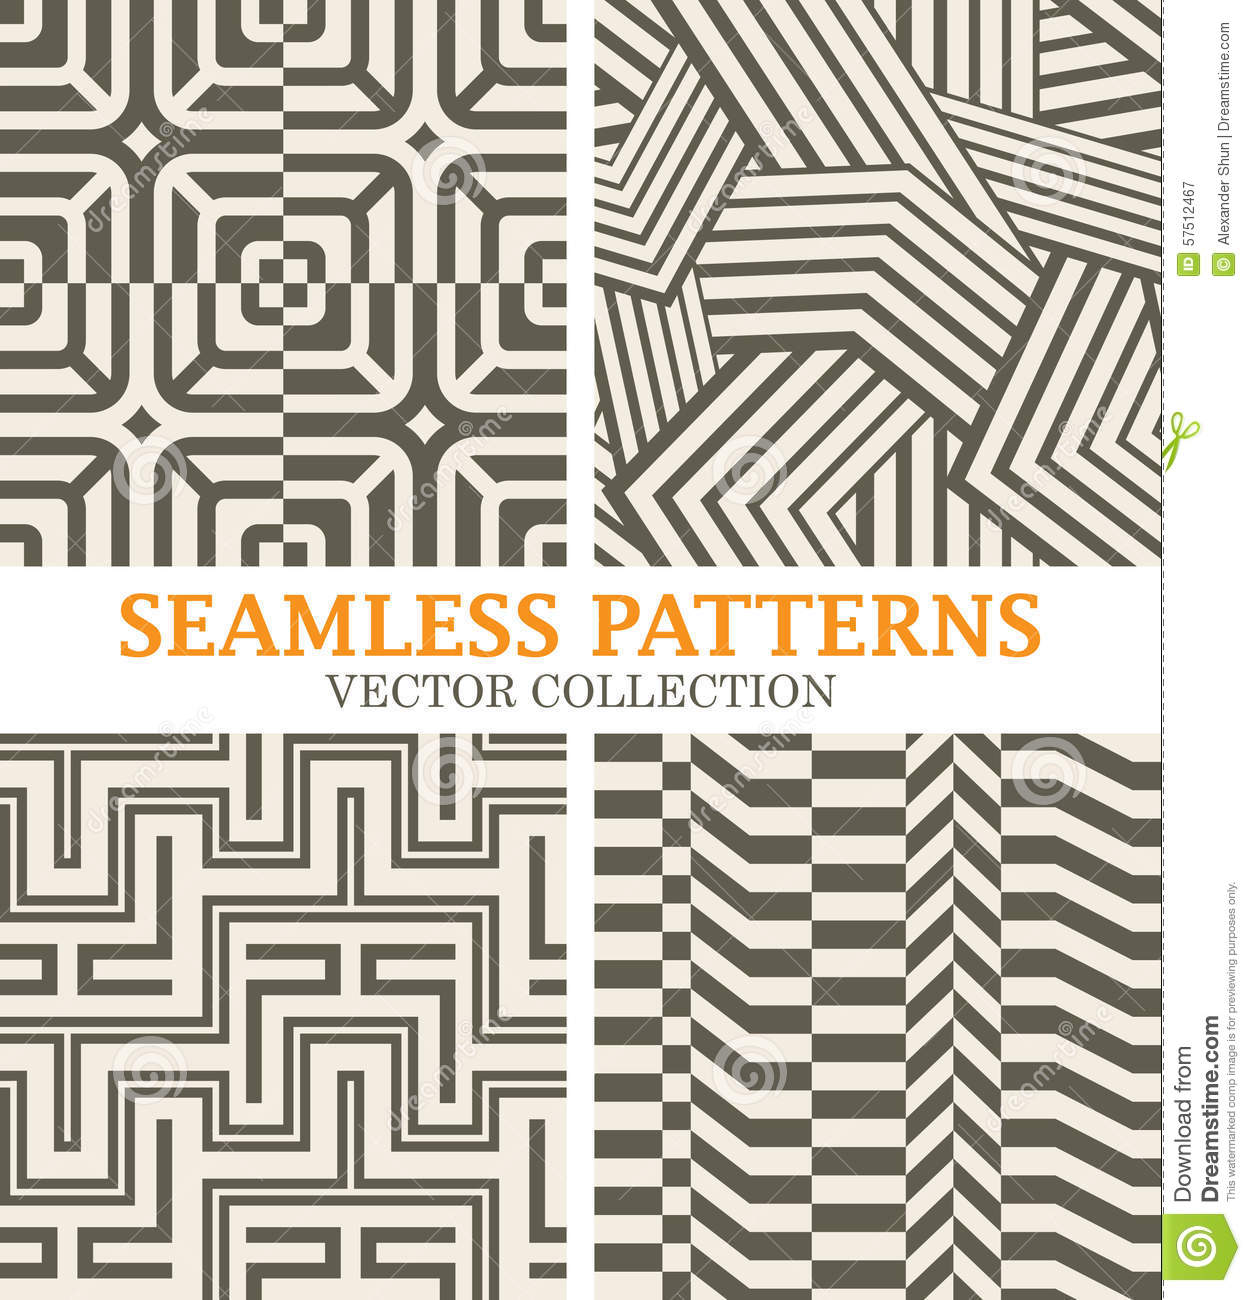 Straight Line Designs : Set of monochrome vector patterns with straight lines